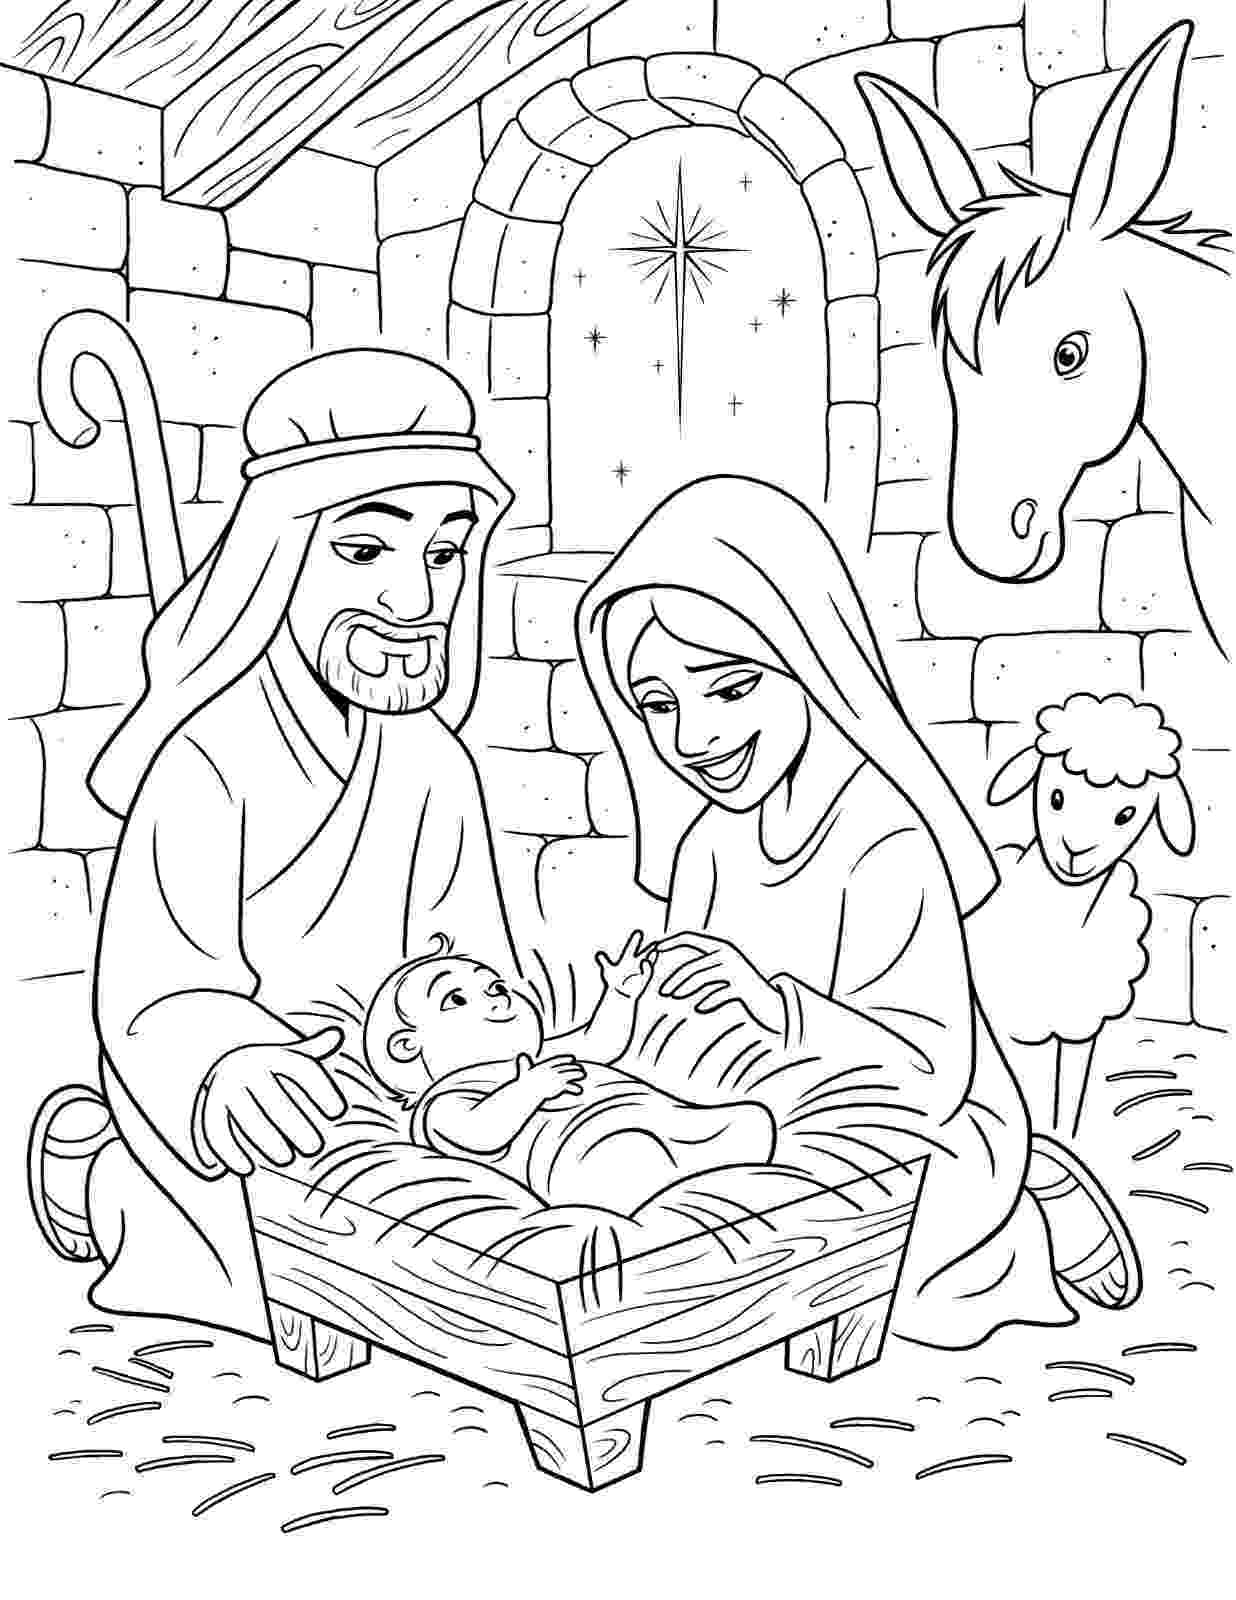 nativity scene coloring pages the birth of christ nativity pages coloring scene